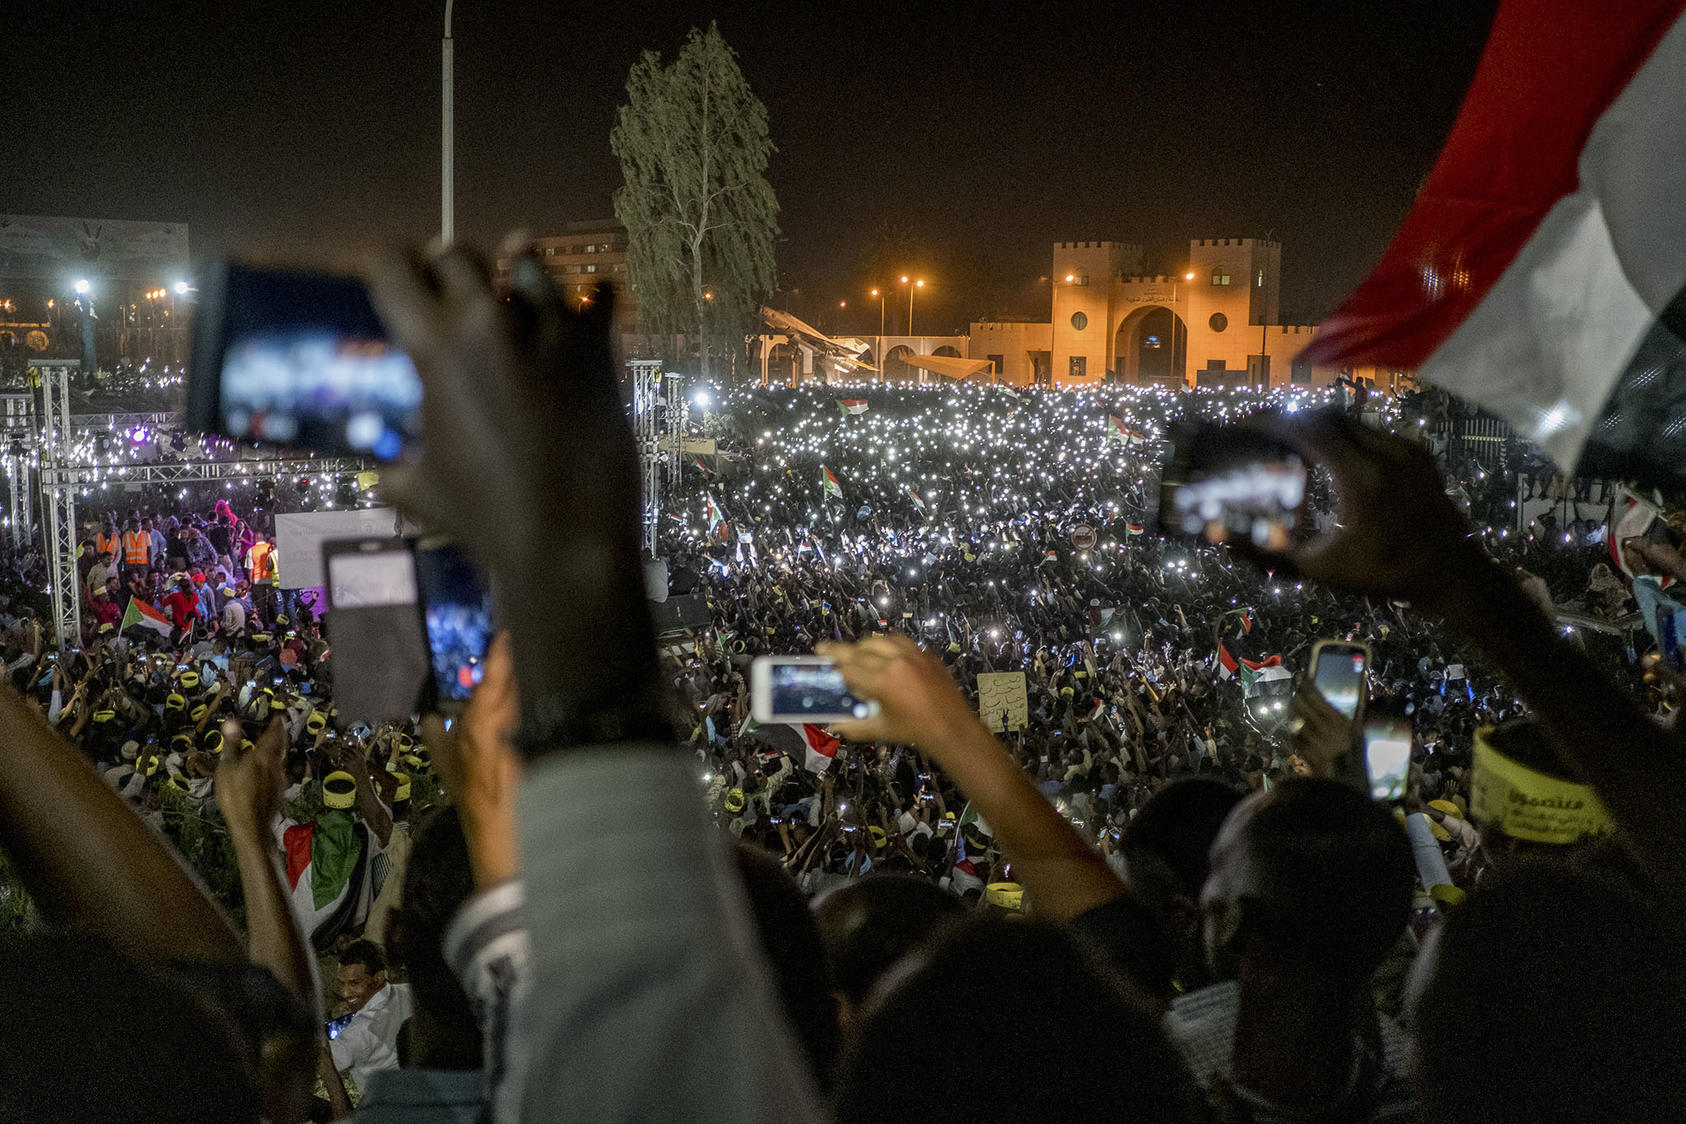 Protesters at a night rally outside the military headquarters in Khartoum, Sudan, April 21, 2019. (Declan Walsh/The New York Times)